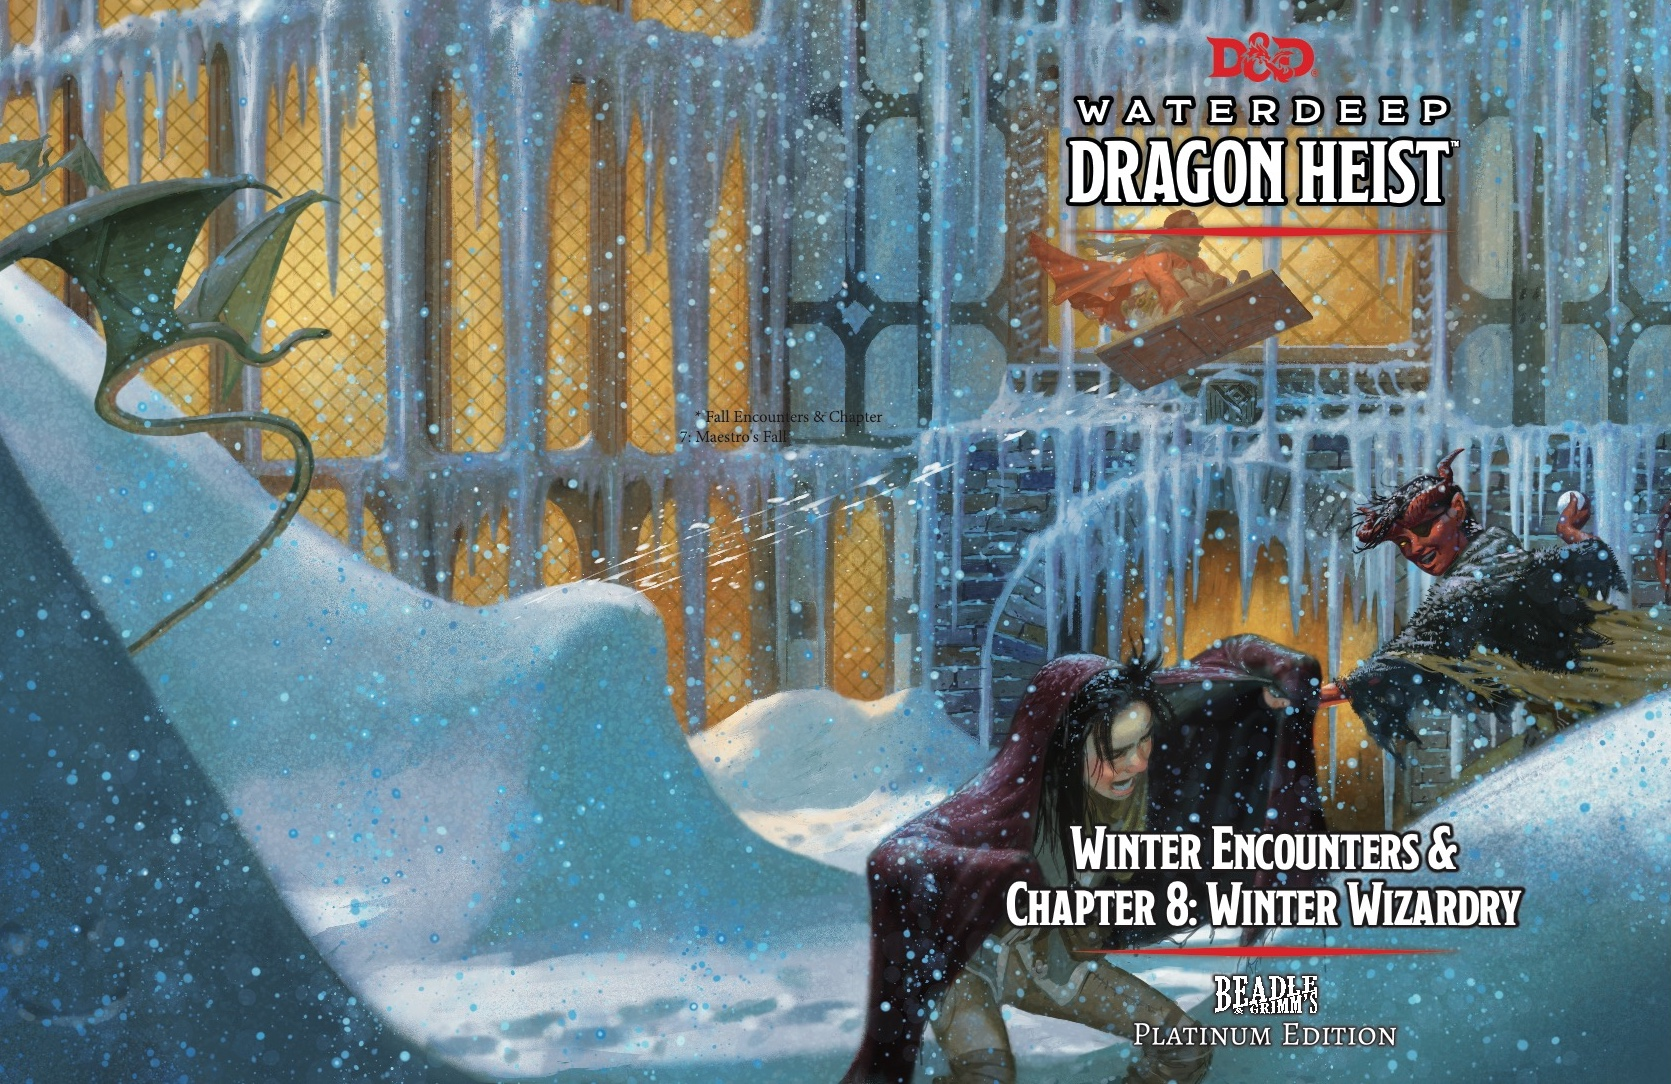 Winter_Wizardry_cover 6.jpg